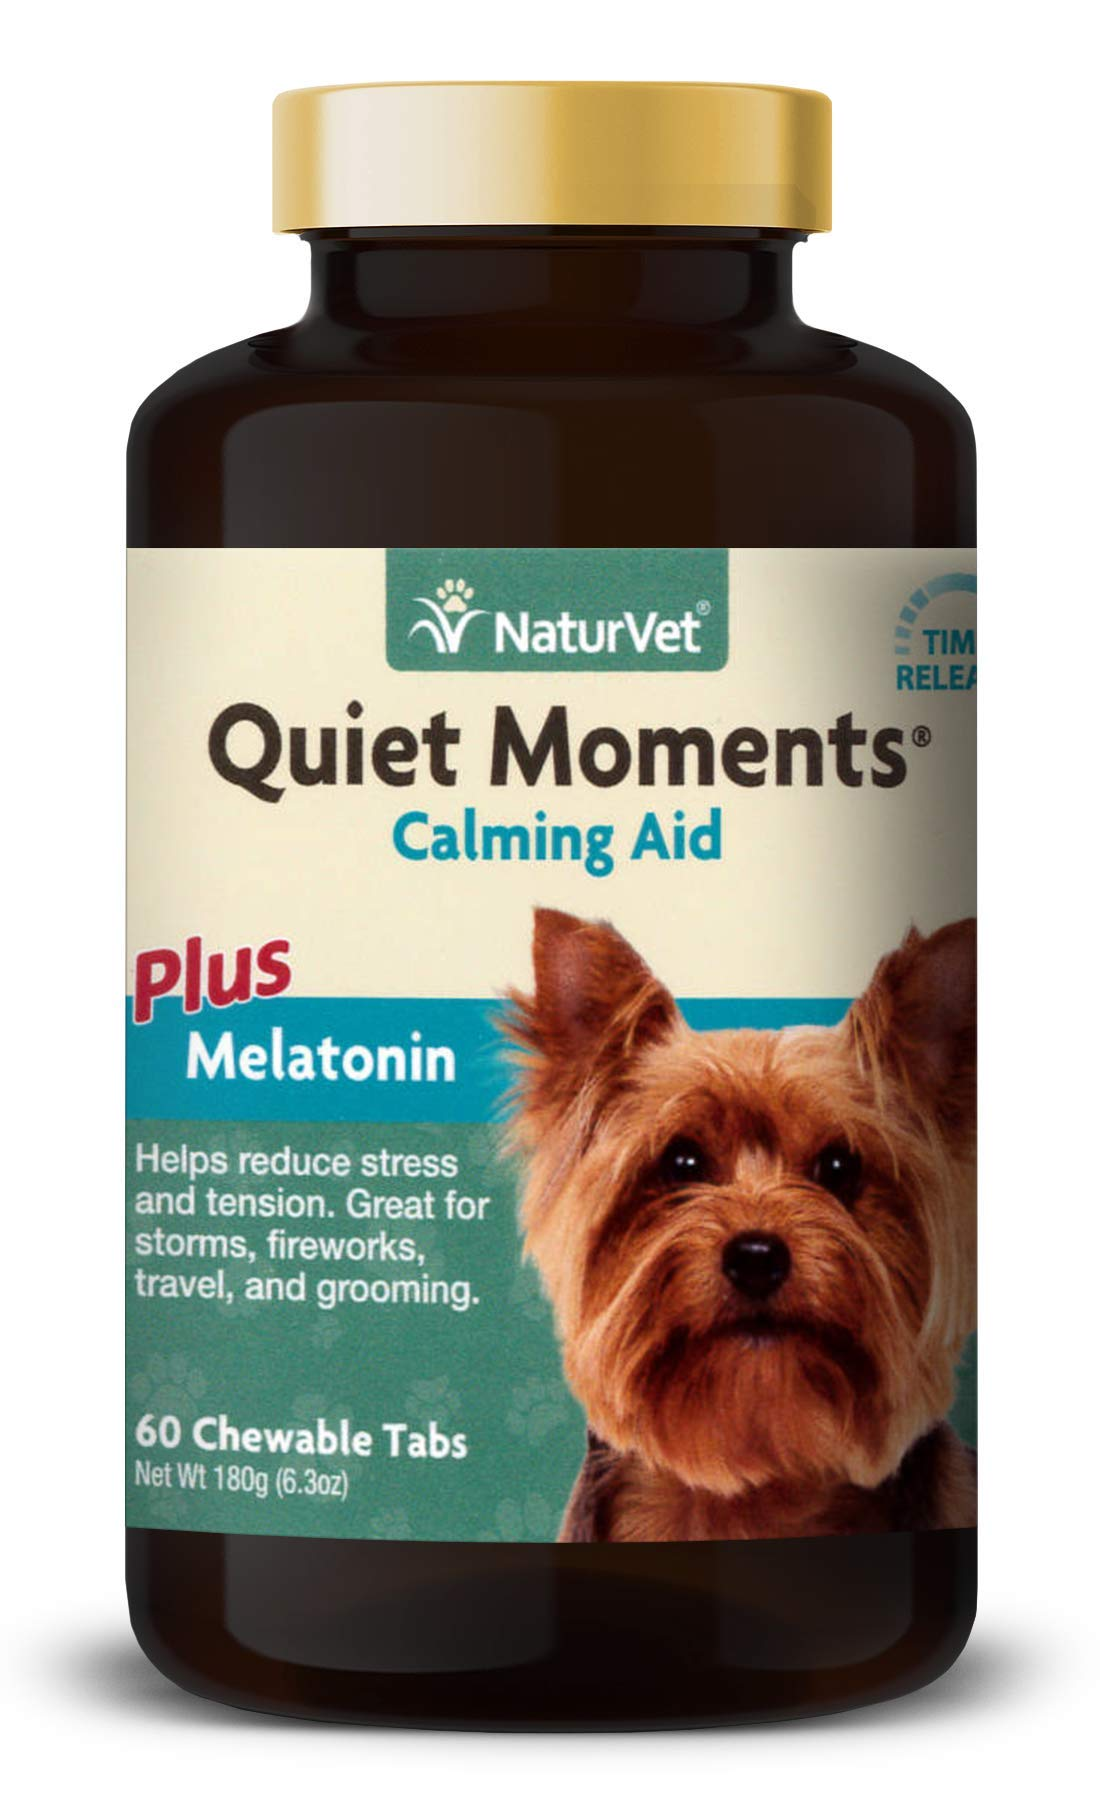 NaturVet - Quiet Moments Calming Aid for Dogs - Plus Melatonin - Helps Reduce Stress & Promote Relaxation - Great for Storms, Fireworks, Separation, Travel & Grooming - 60 Time Release Tablets by NaturVet